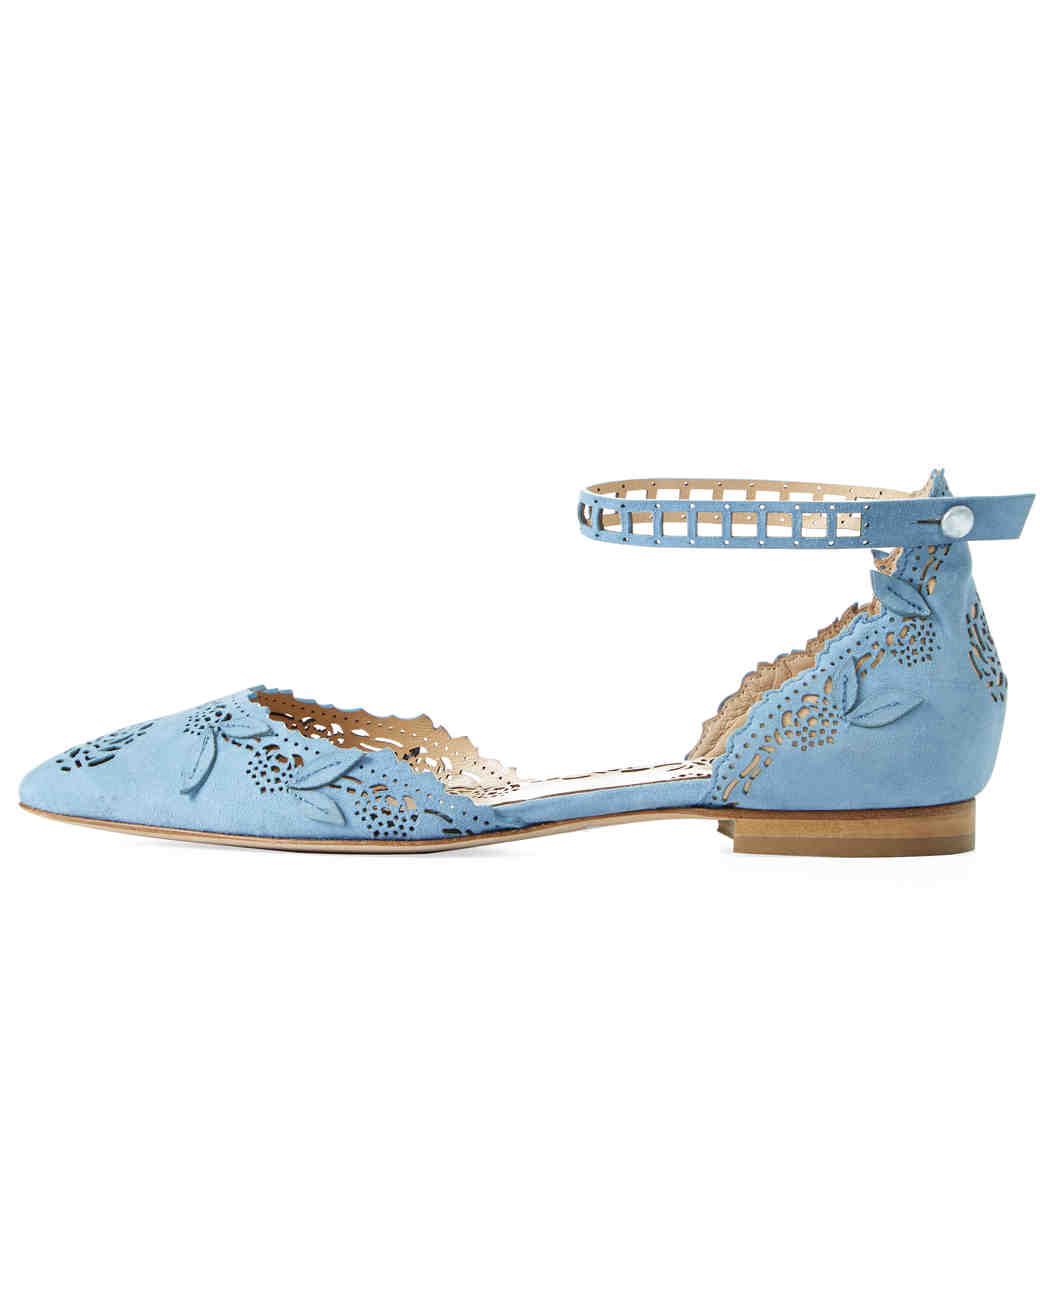 15 Outdoor Wedding Shoes That Won T Sink Into The Grass